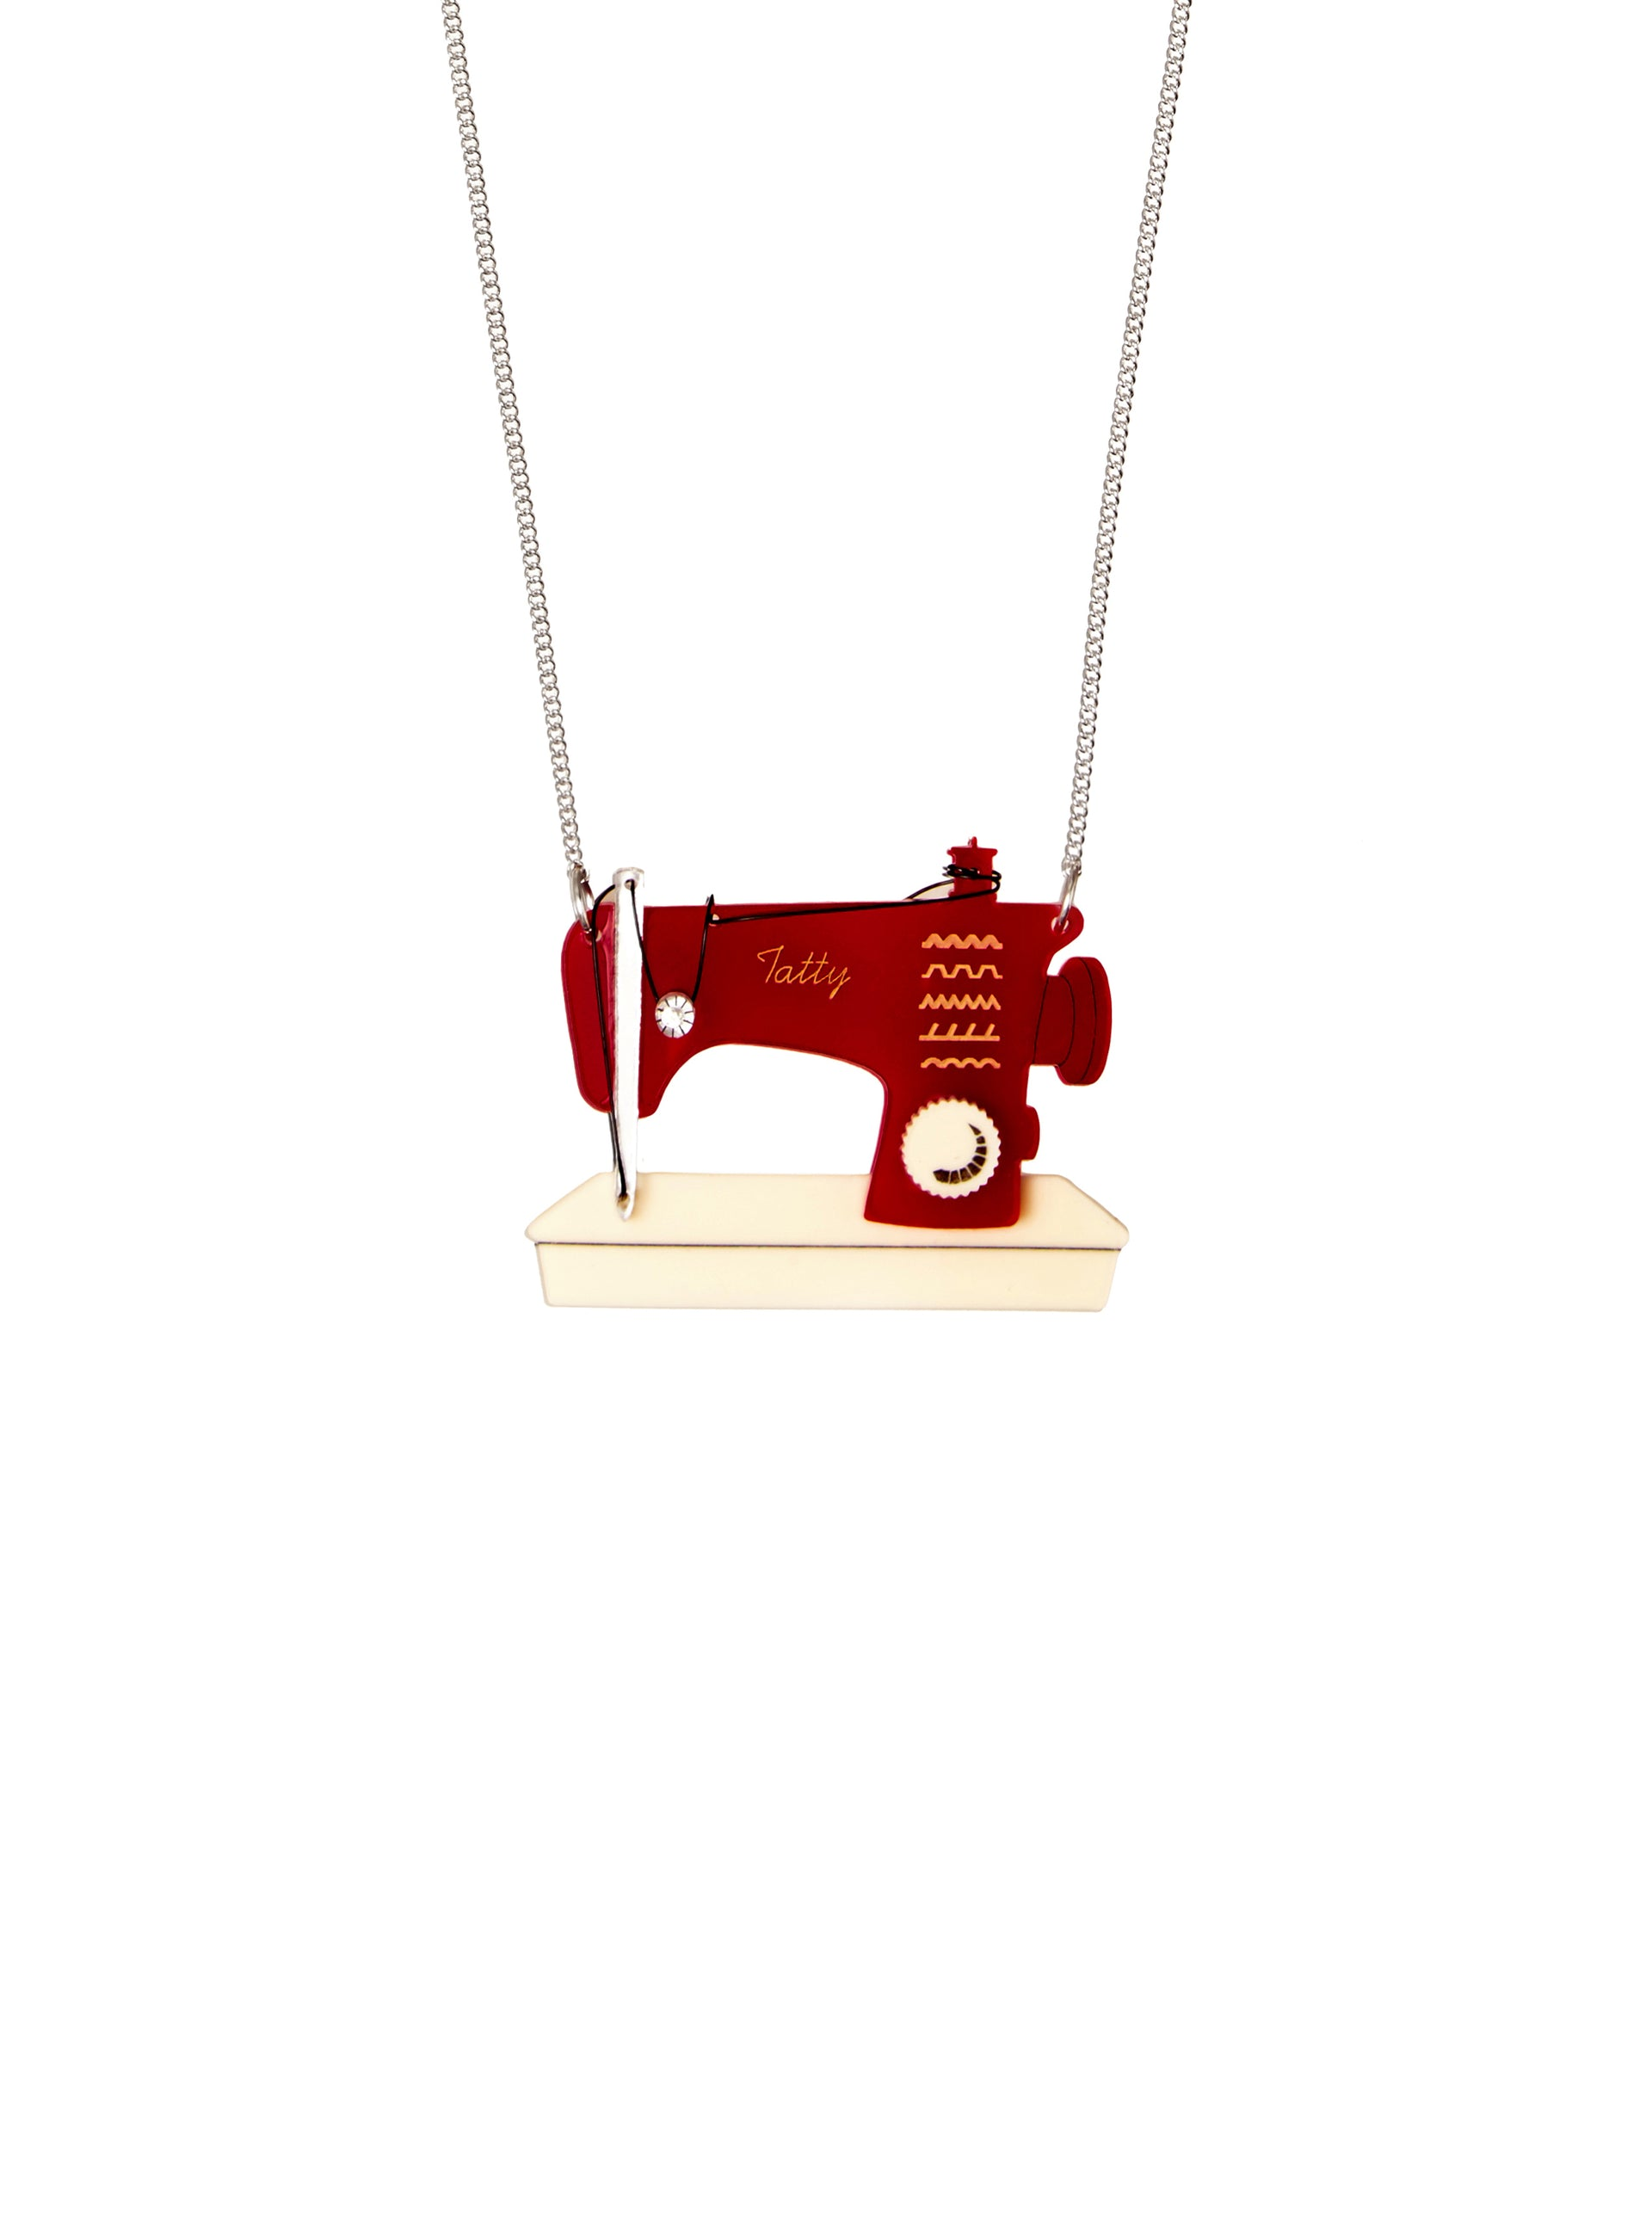 Sewing Machine Necklace - Red